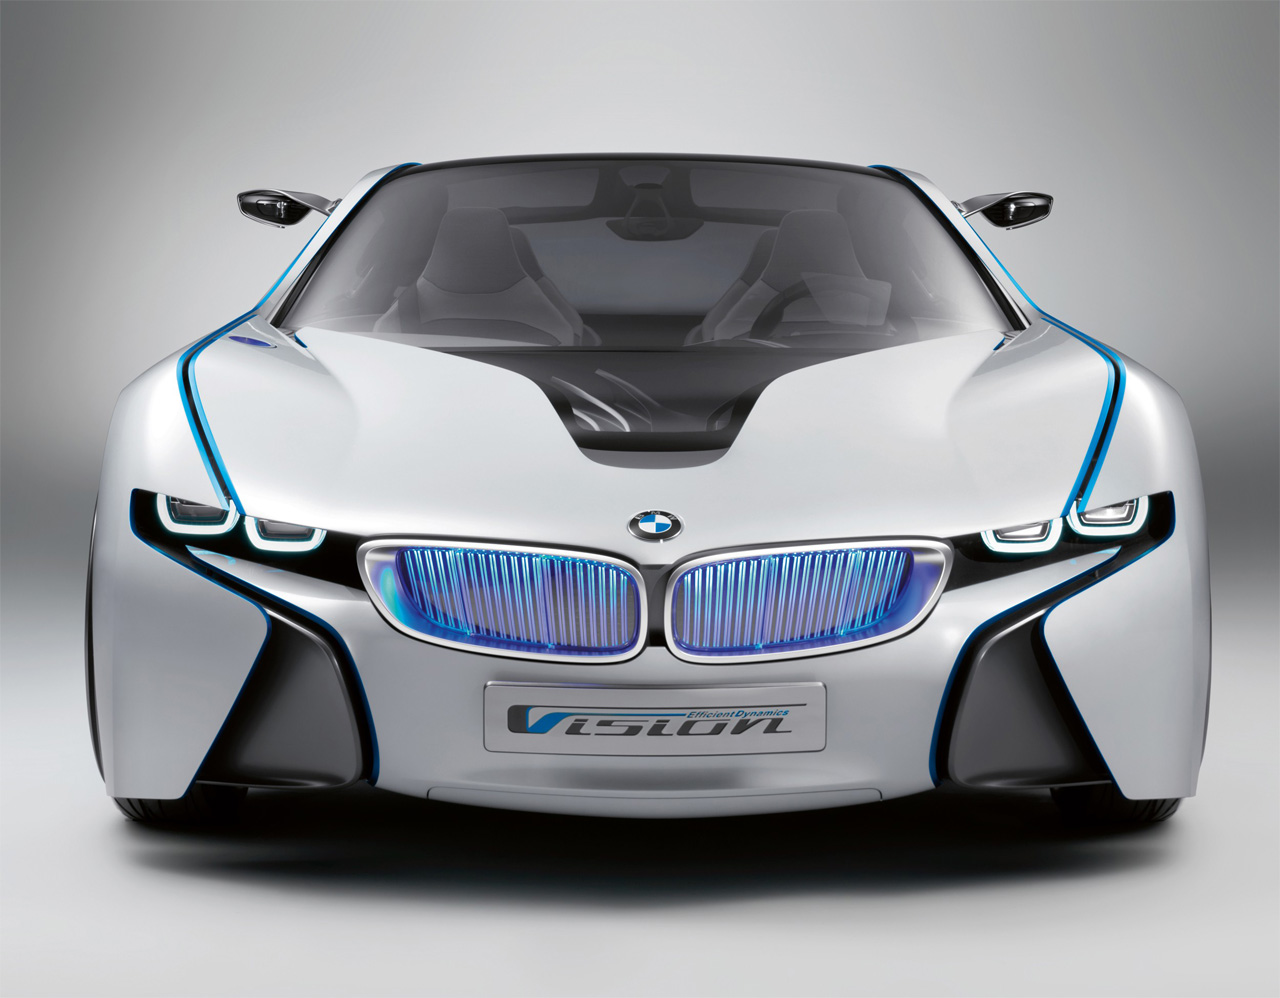 Bmw conceptcar photo - 3